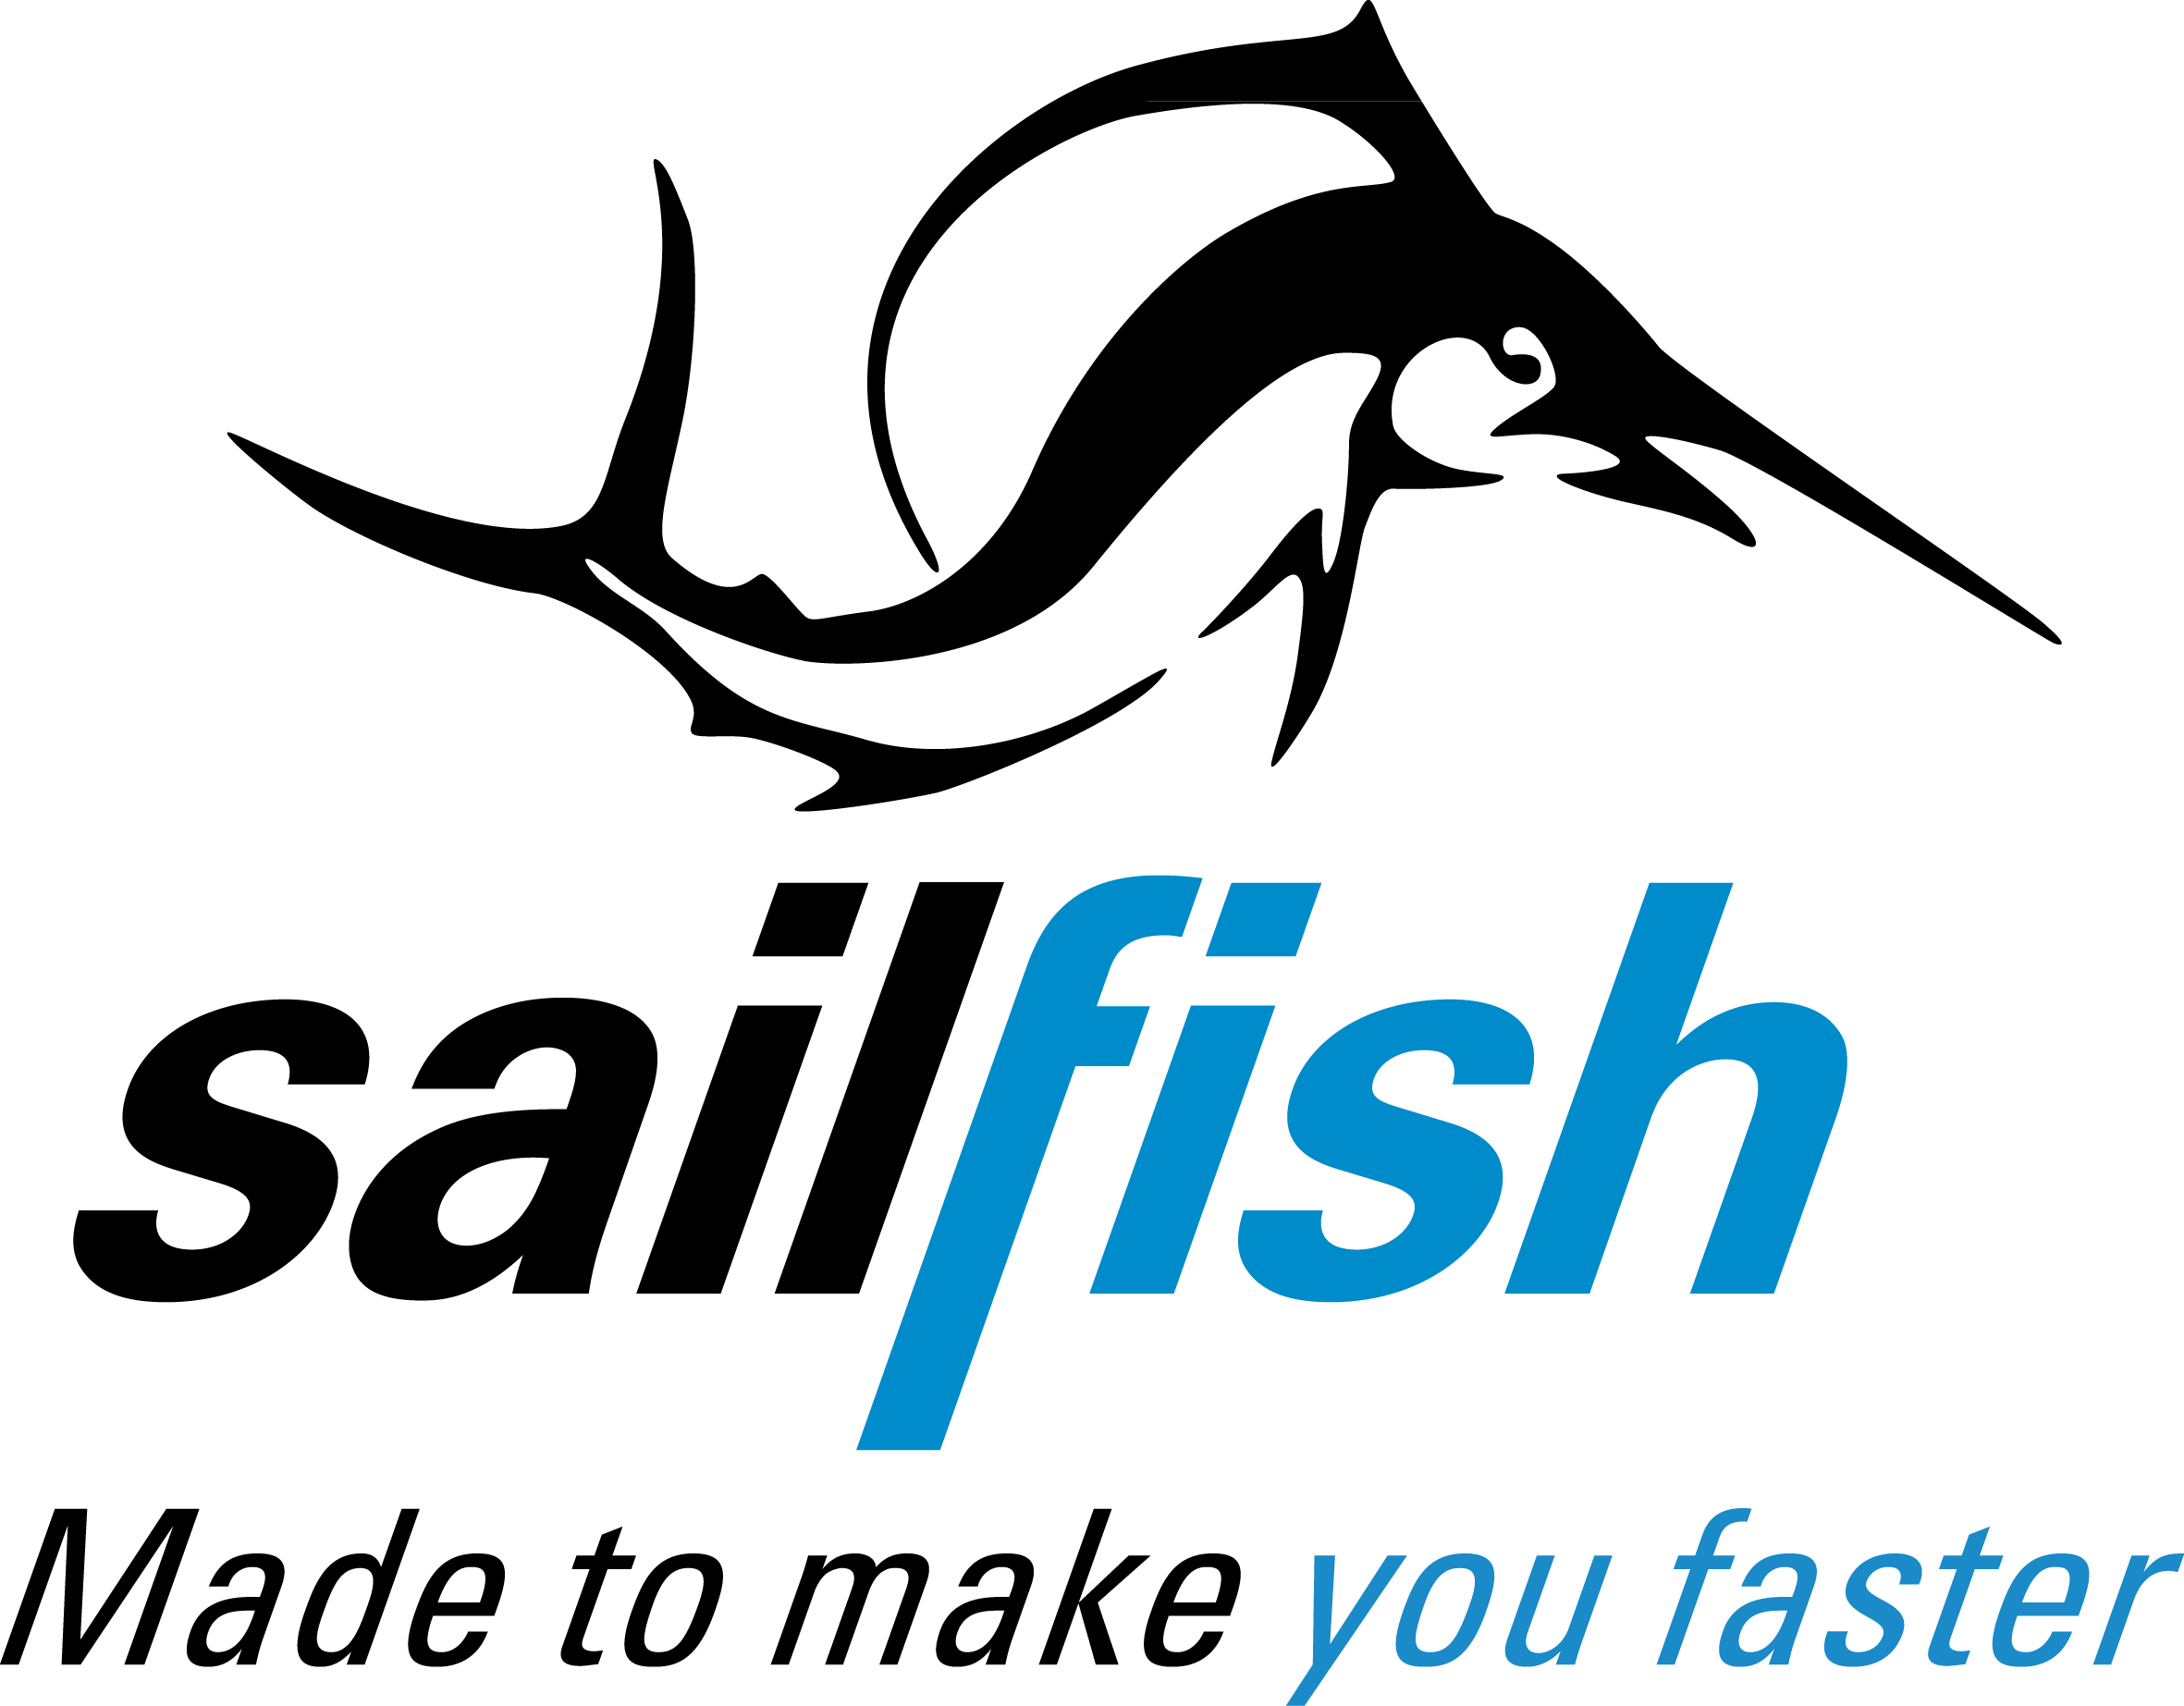 sailfish-Kombi-Claim-black-blue